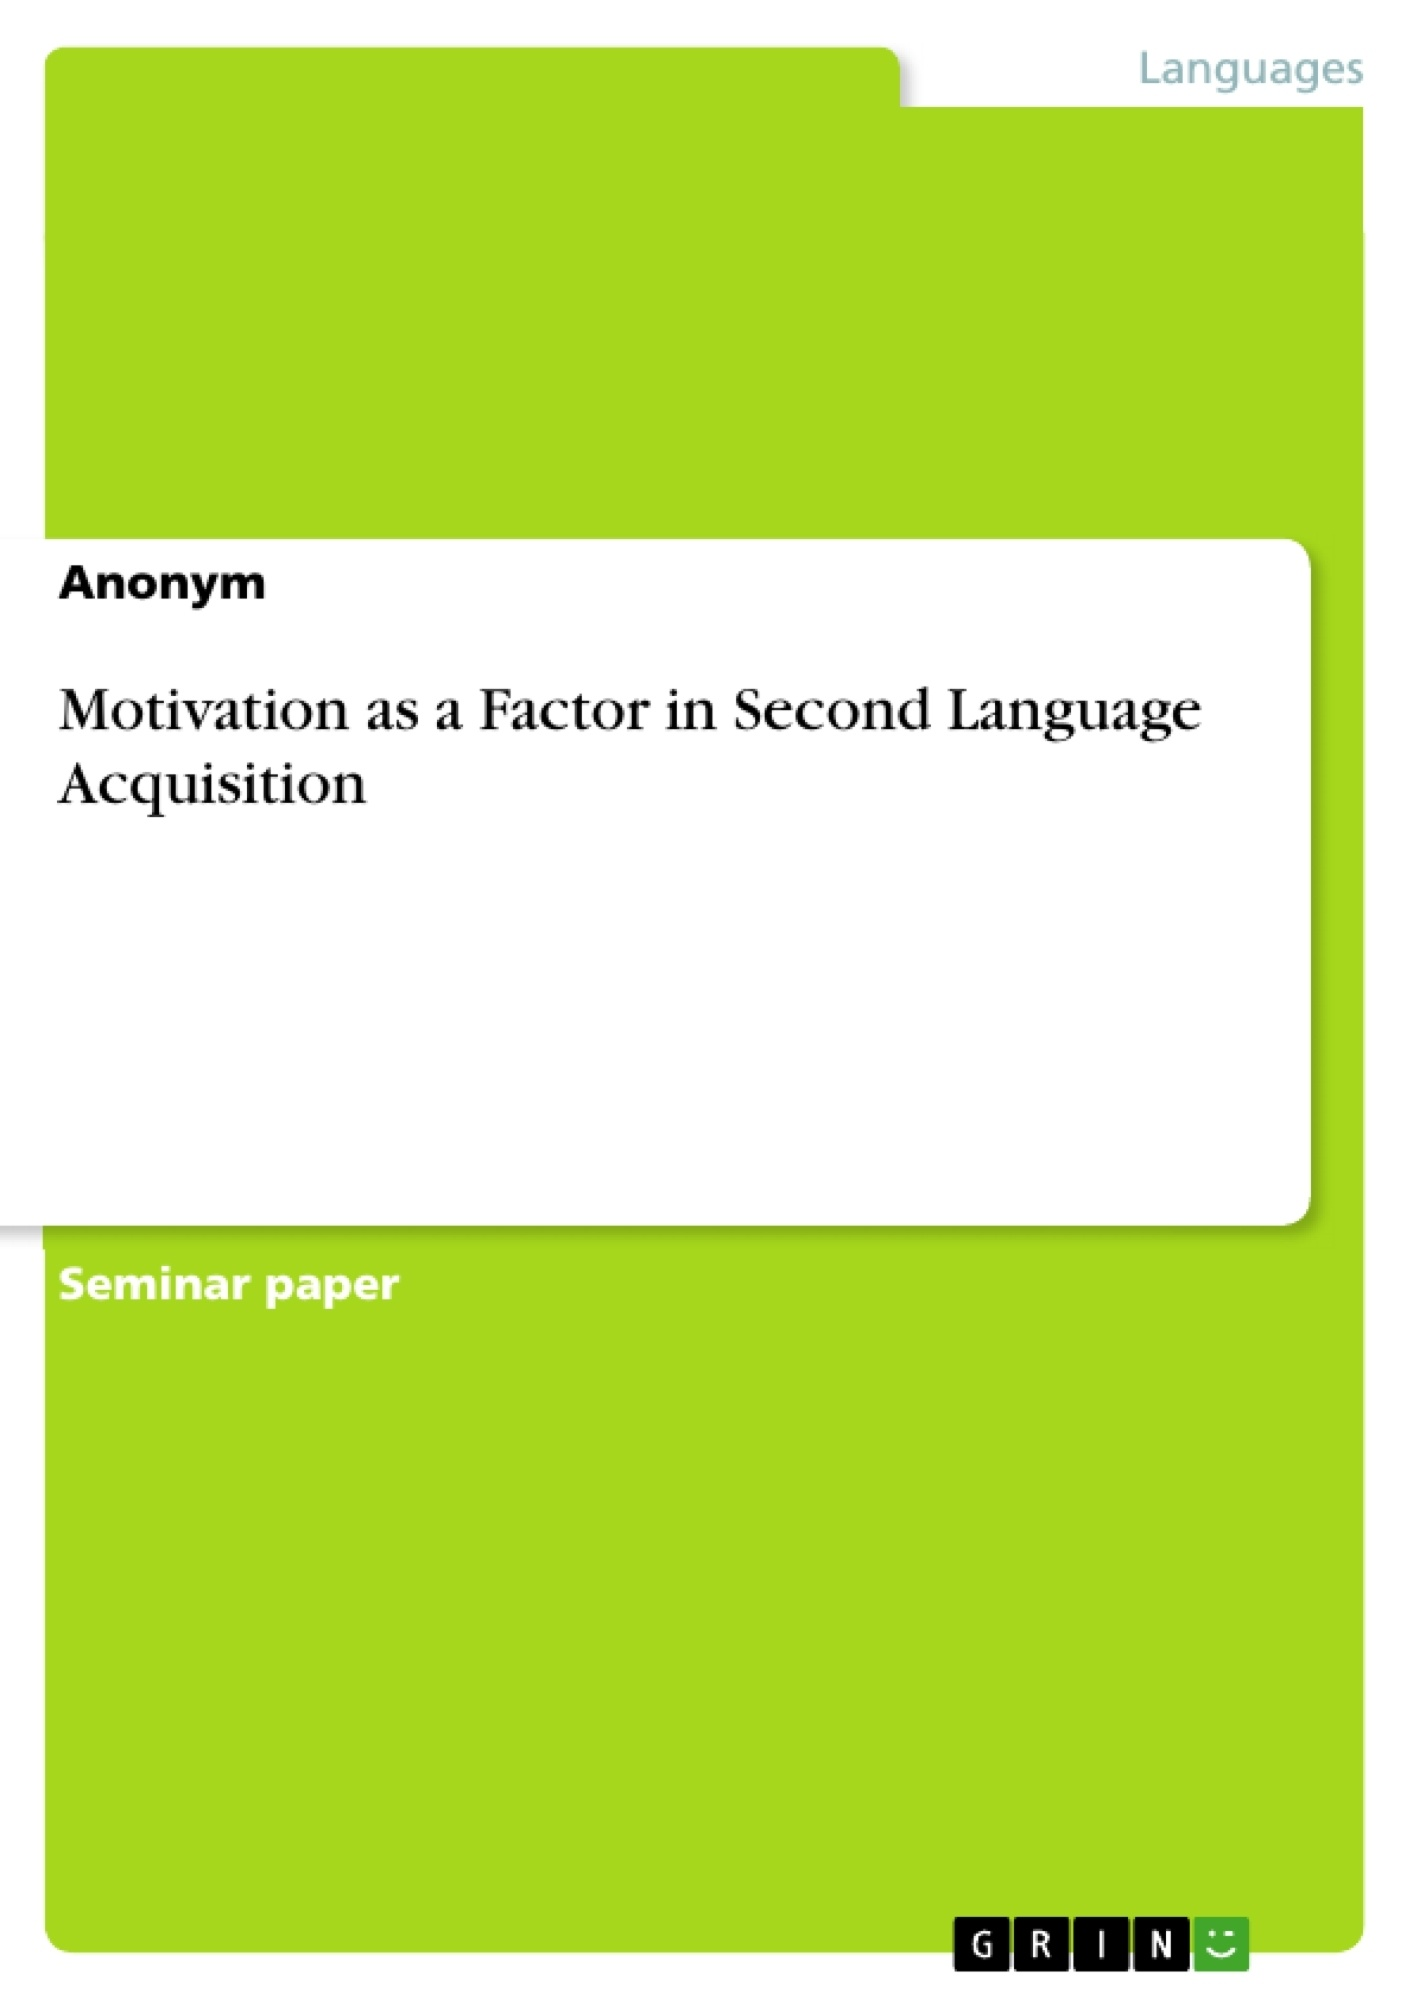 Title: Motivation as a Factor in Second Language Acquisition